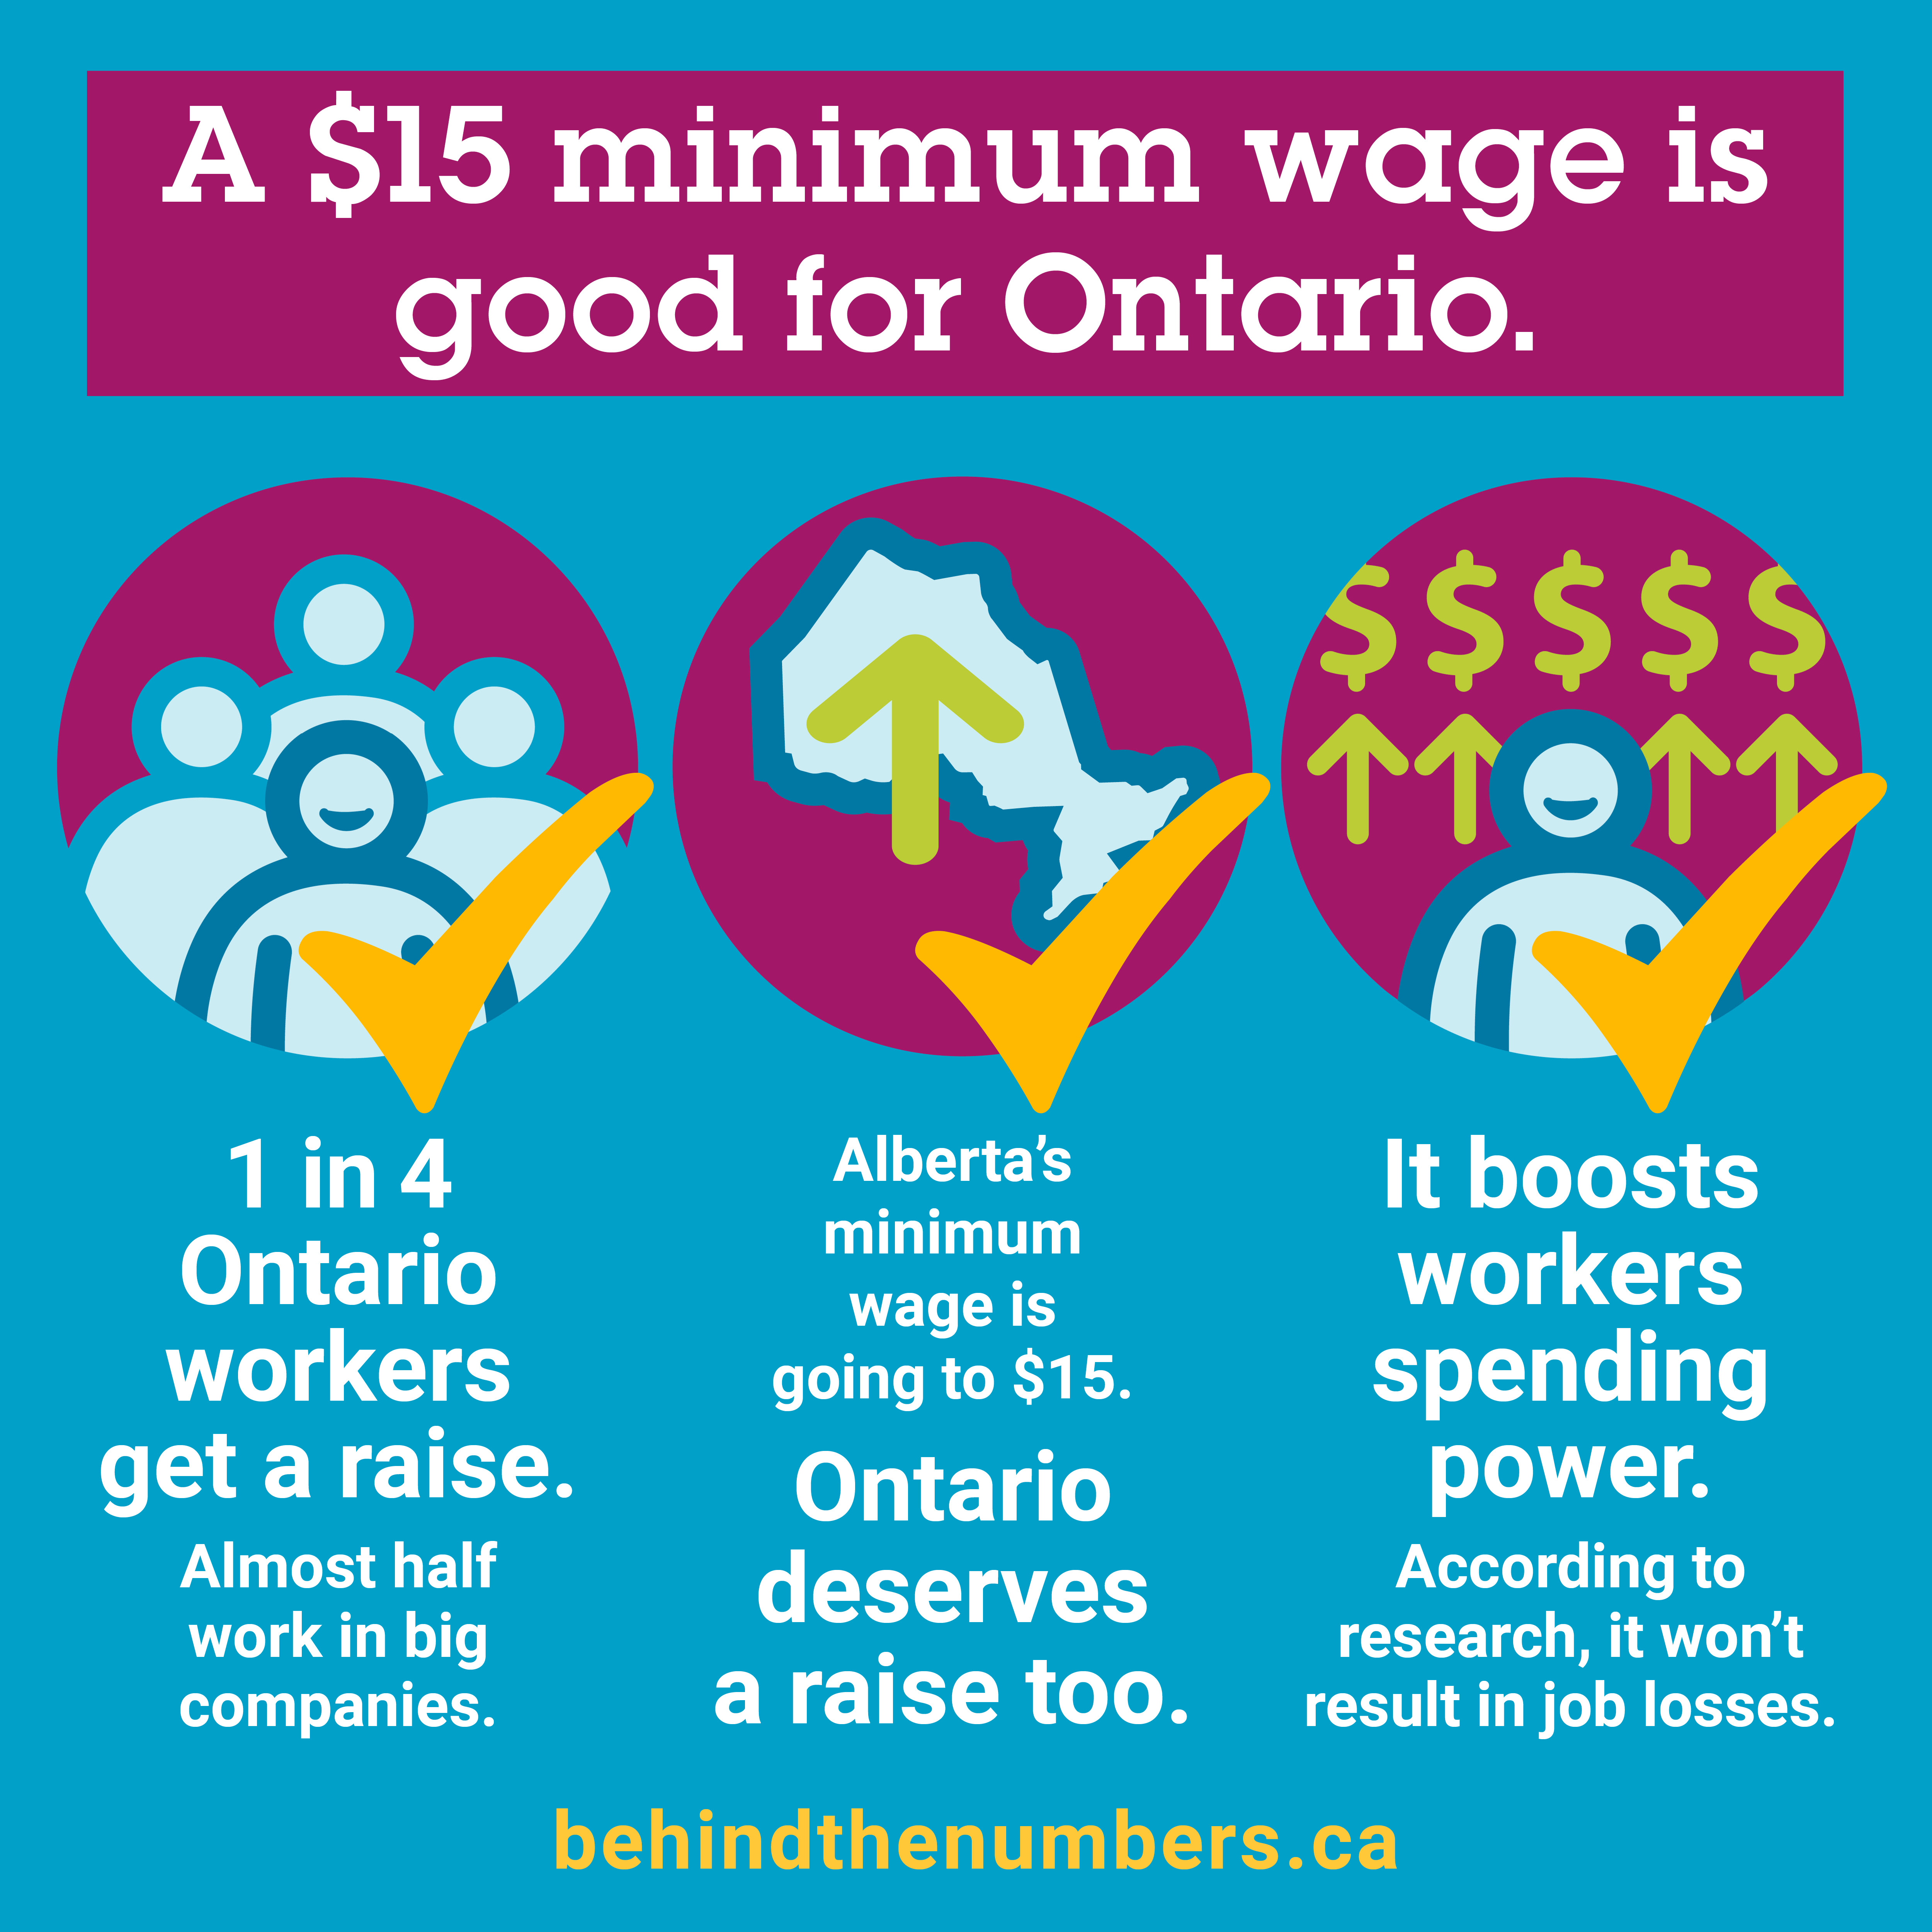 A $15 minimum wage is good for Ontario